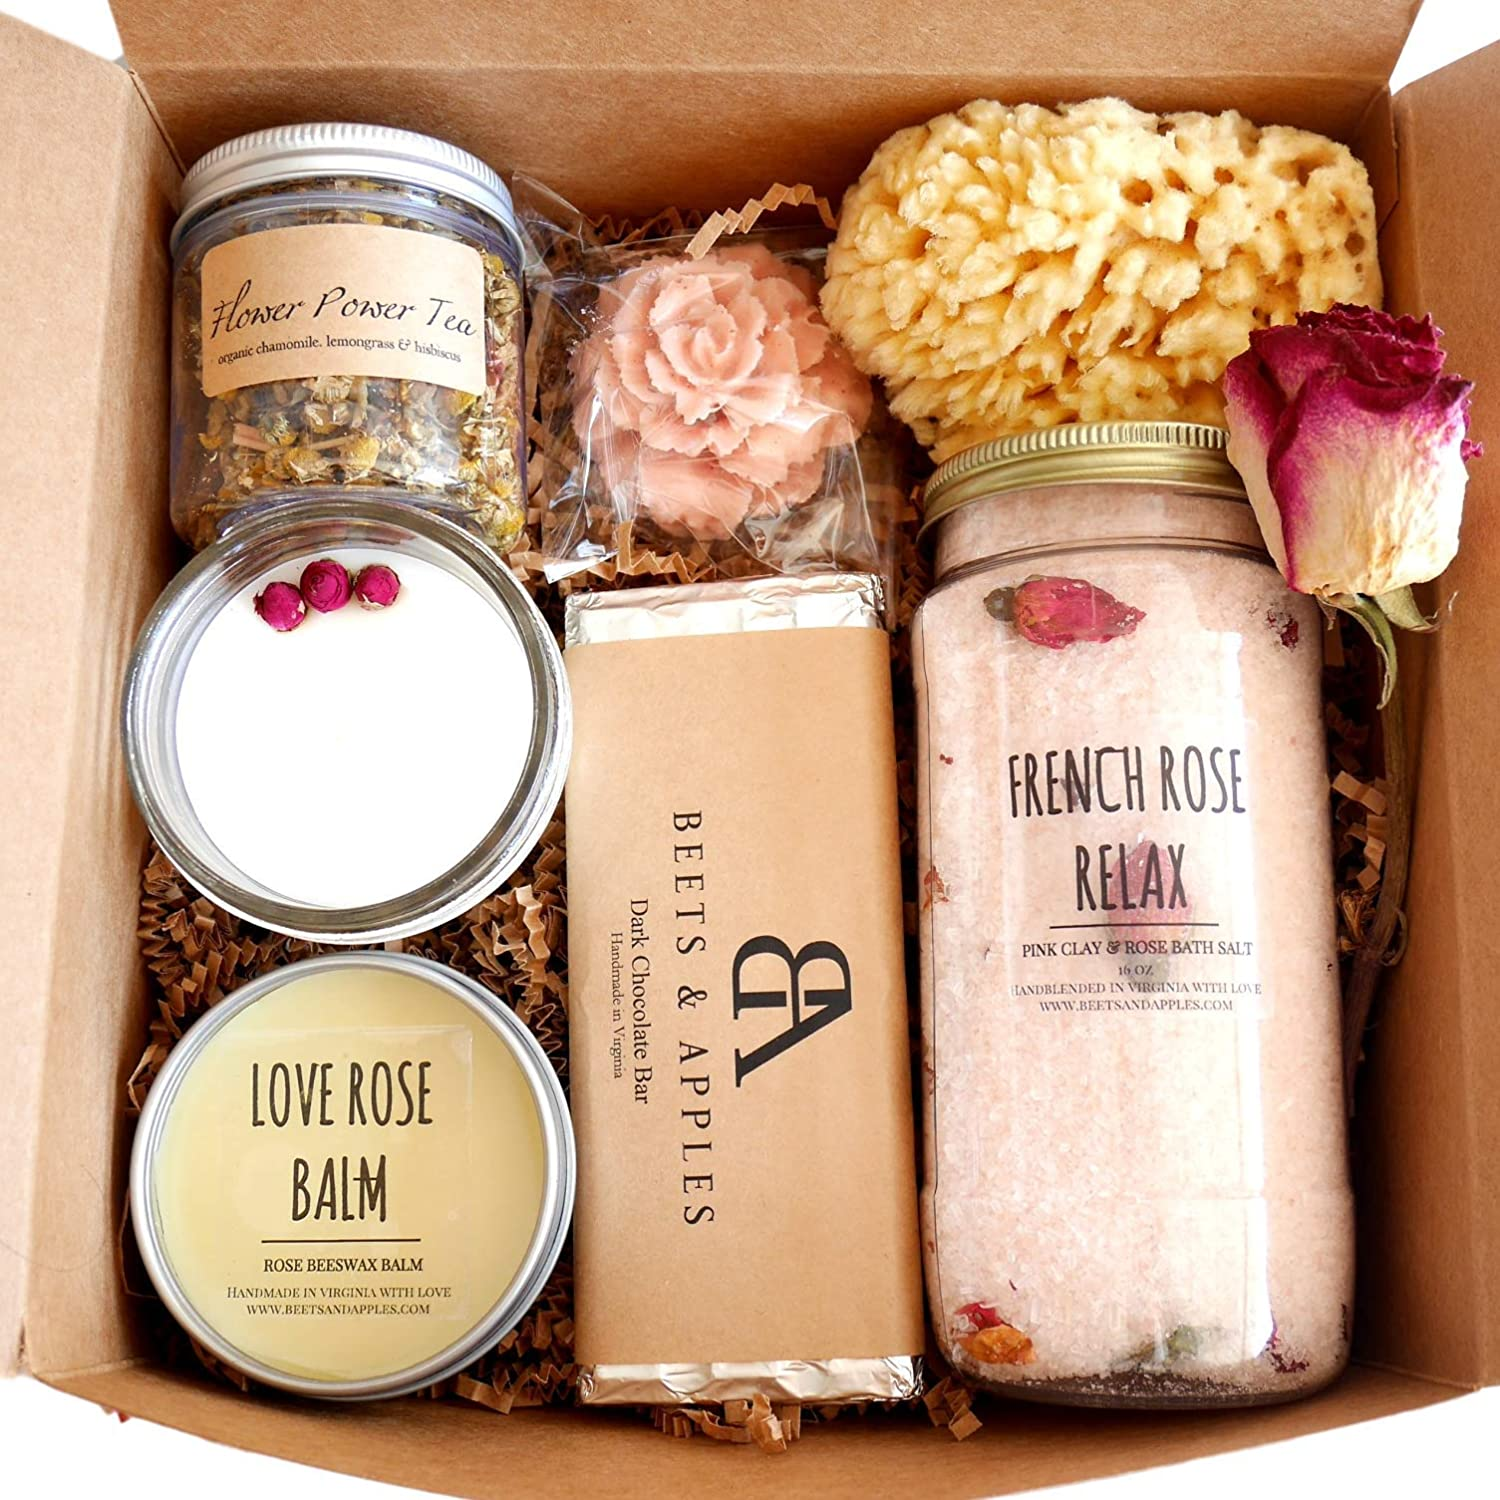 Rose spa gift set. Self care gifts for coworkers. Homemade wellness gifts. wellness experience gifts. Wellness inspired gifts. gifts for wellness freaks. Wellness holiday gifts.